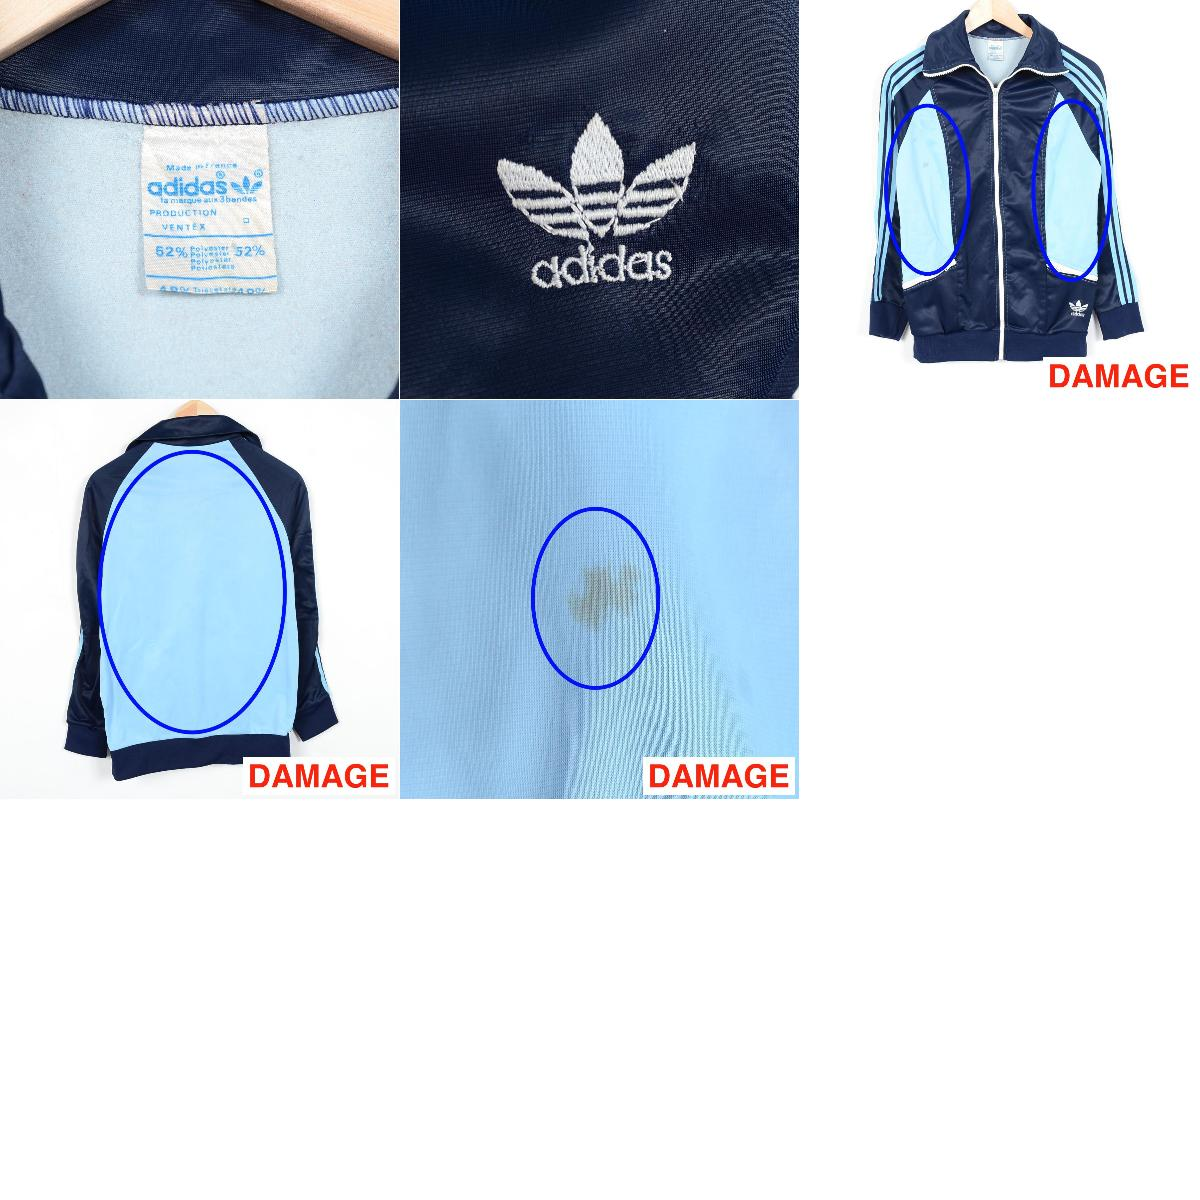 70-80's adidas VENTEX co. made in France-Jersey track jackets mens XS vintage adidas /wep8811 160411